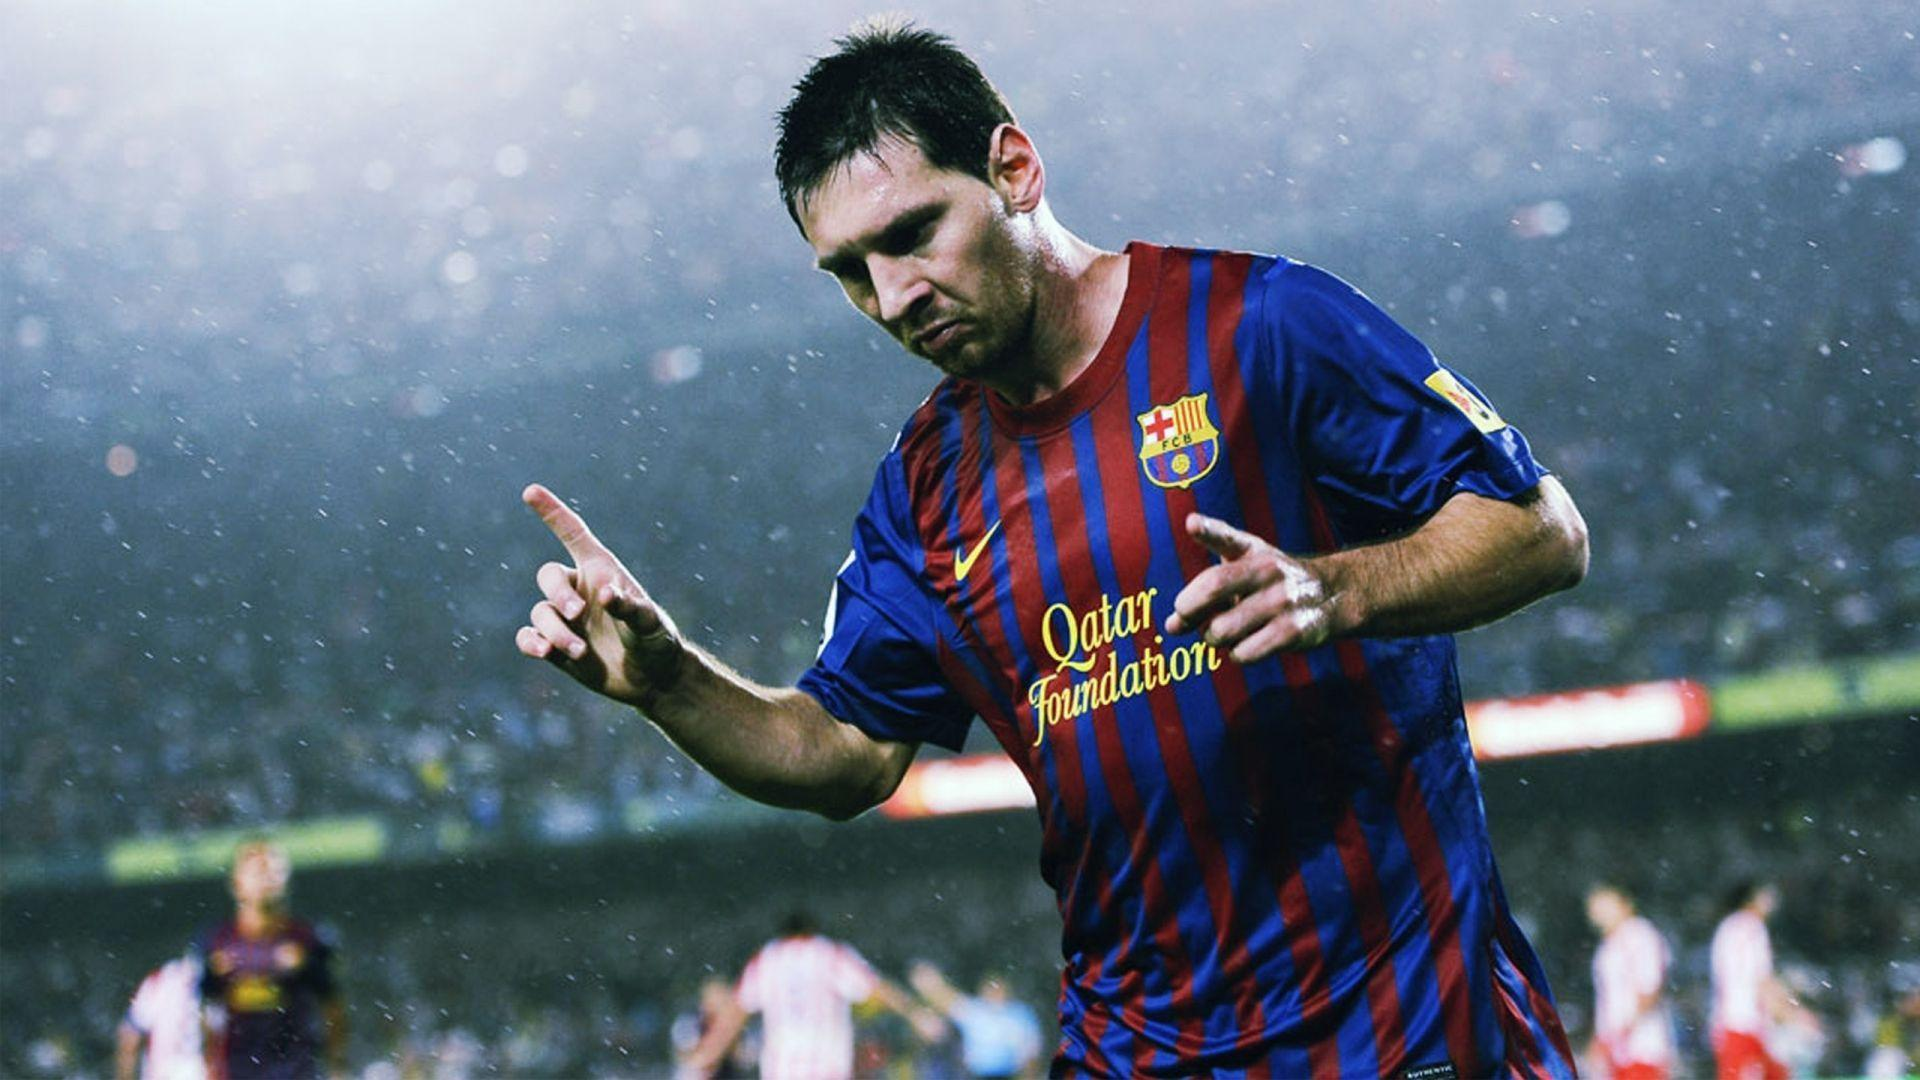 Leo Messi 2013 Desktop Background Wallpaper 1920x1080 | Hot HD ...